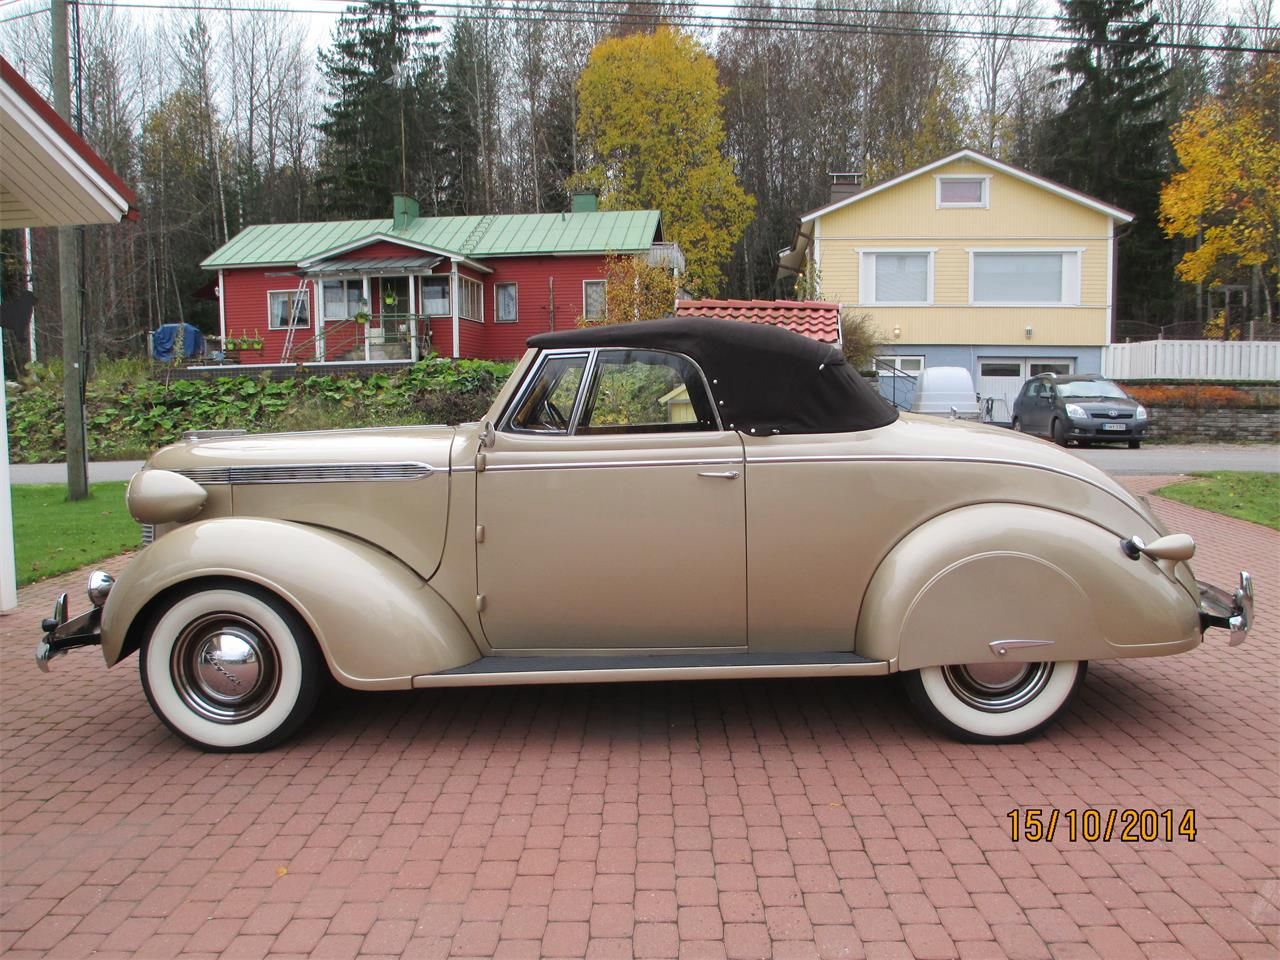 Large Picture of '37 Chrysler Royal - $79,000.00 Offered by a Private Seller - OTNV